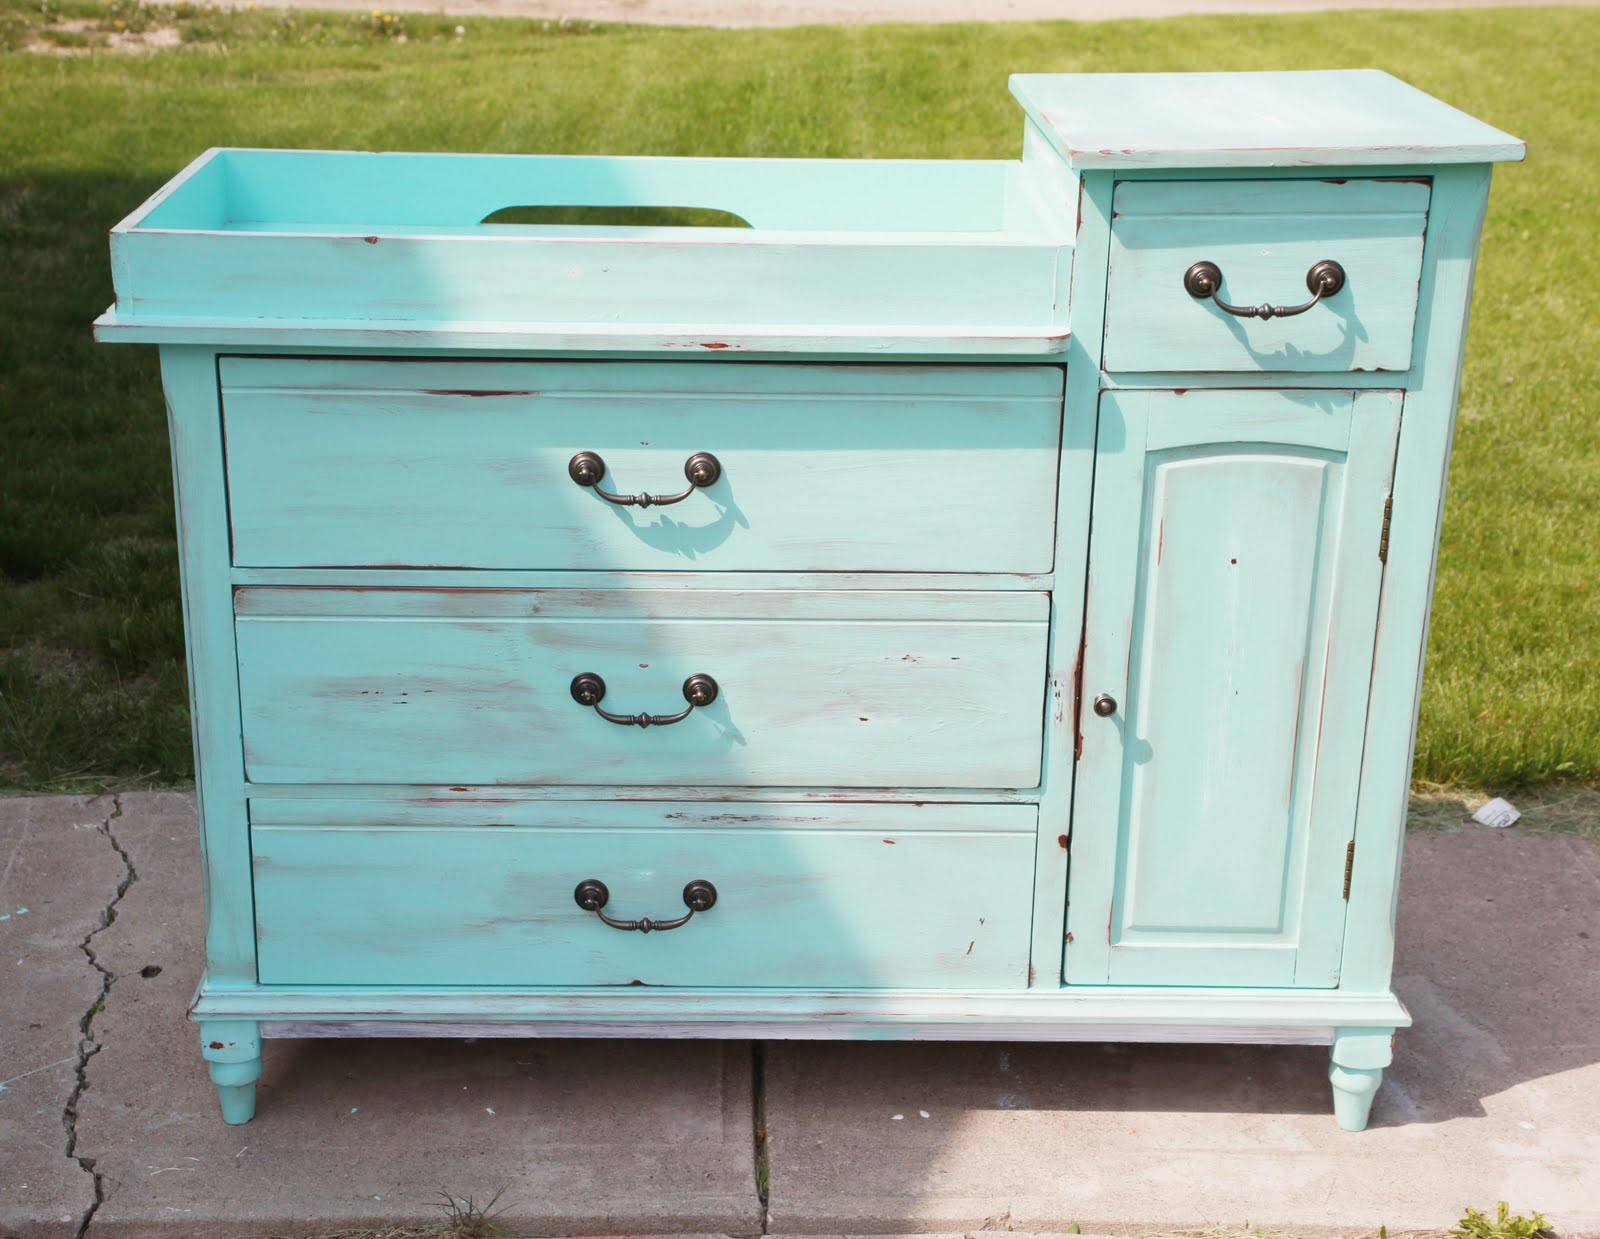 Achieving Proverbs 31 Baby Nursery Part III My Artsy Changing Table Redo